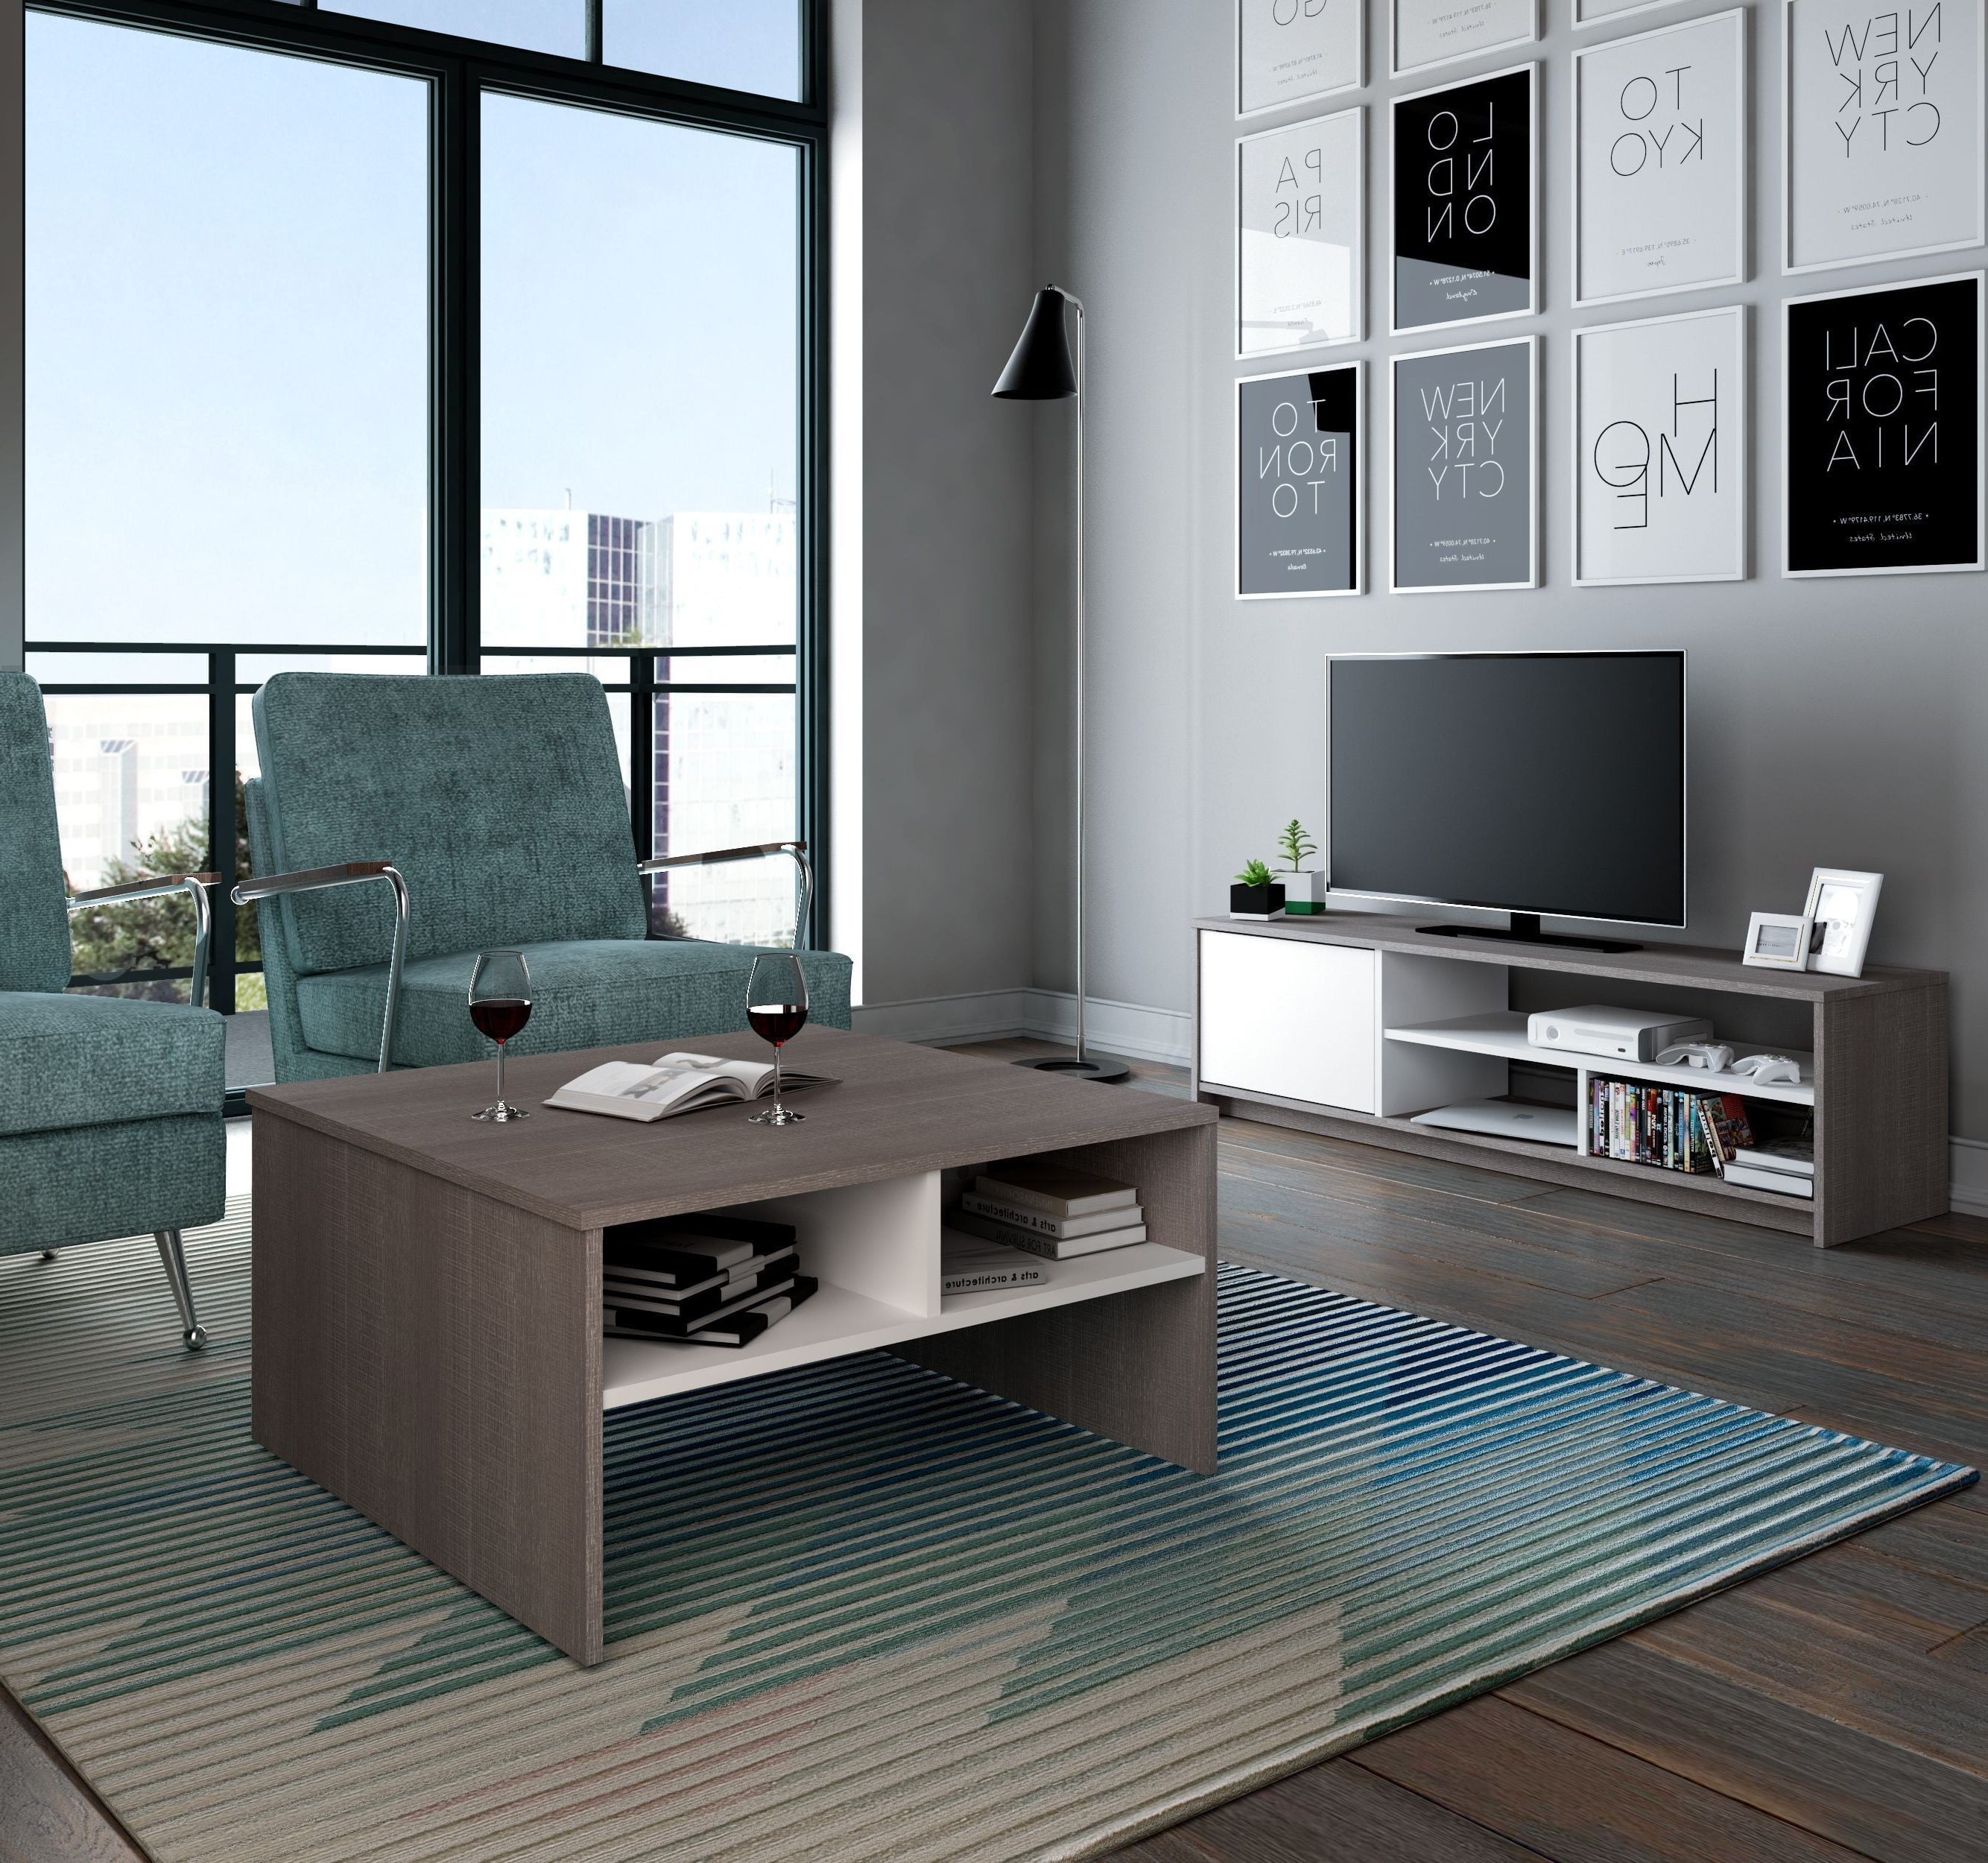 Coffee Tables And Tv Stands Sets Intended For Most Up To Date Small Space Bark Gray And White Storage Coffee Table With Tv Stand (View 5 of 20)